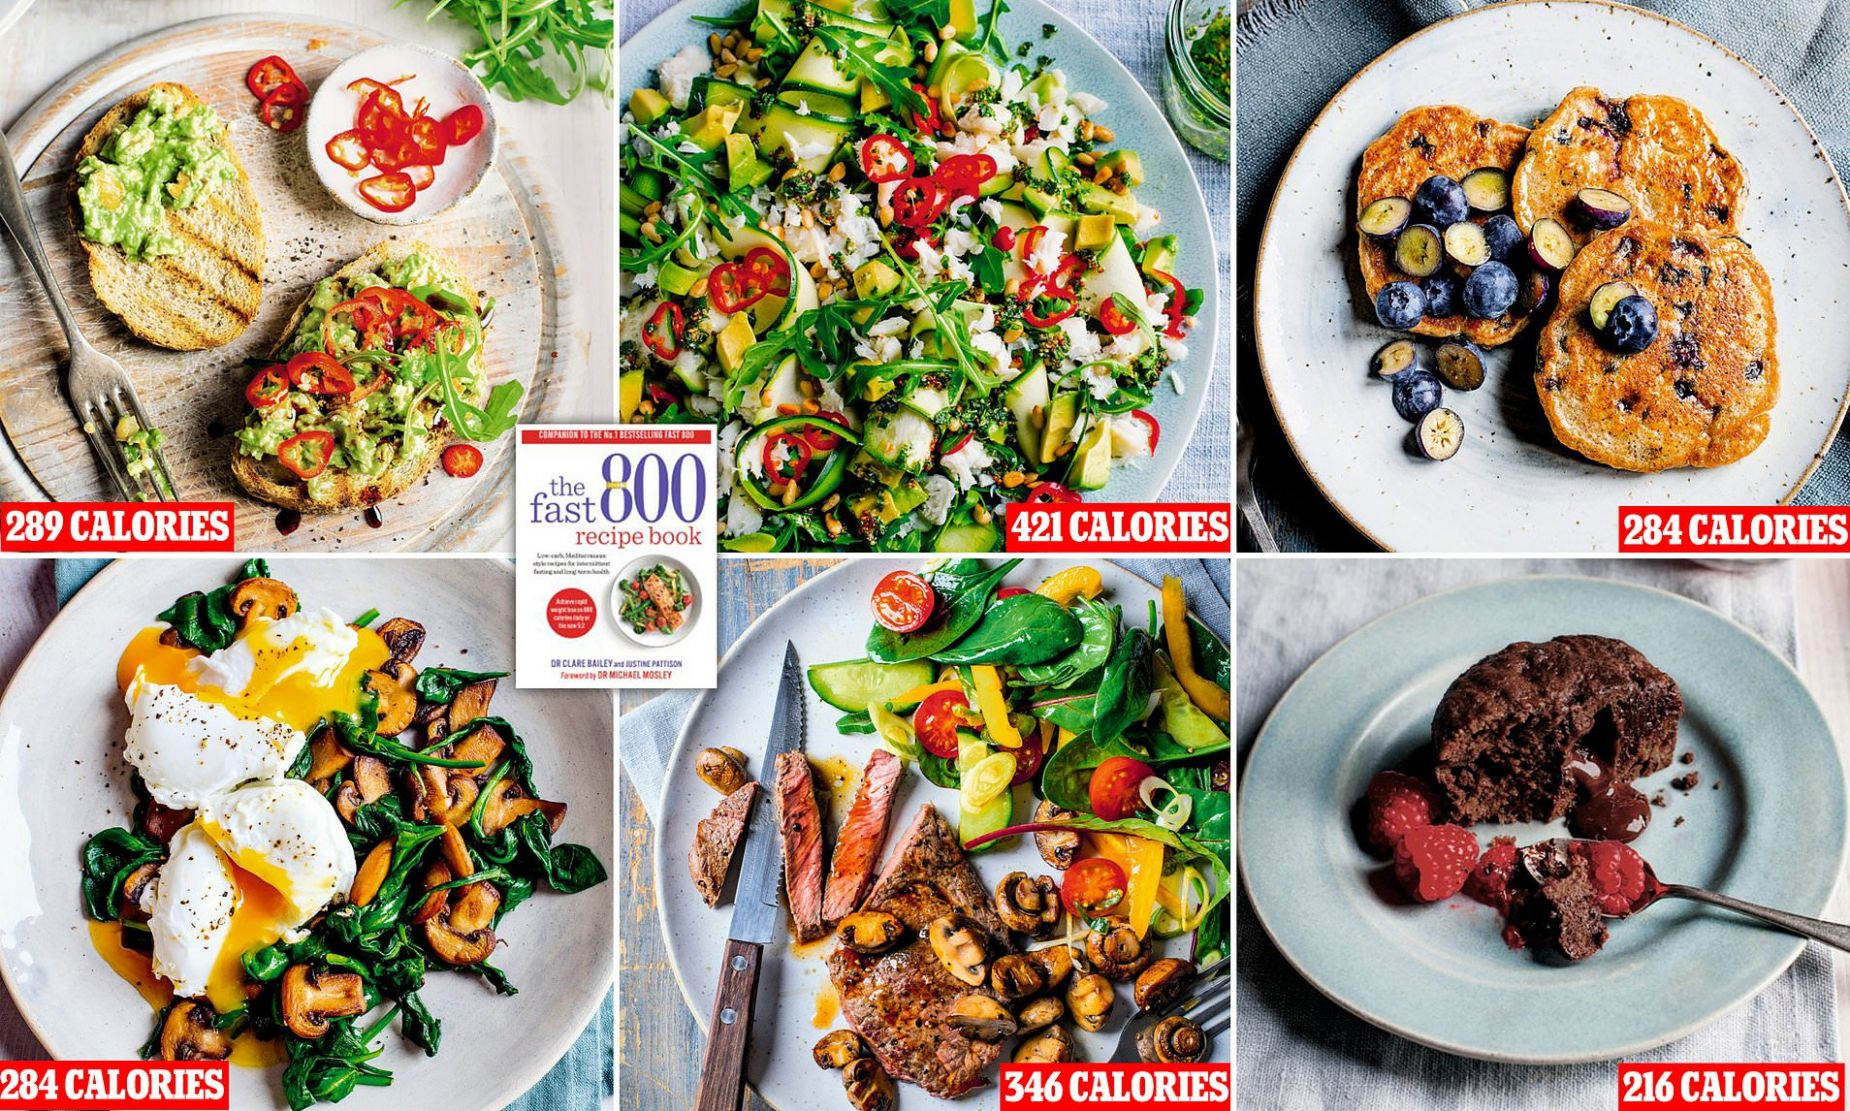 The fast 8 diet all new summer recipes   Daily Mail Online